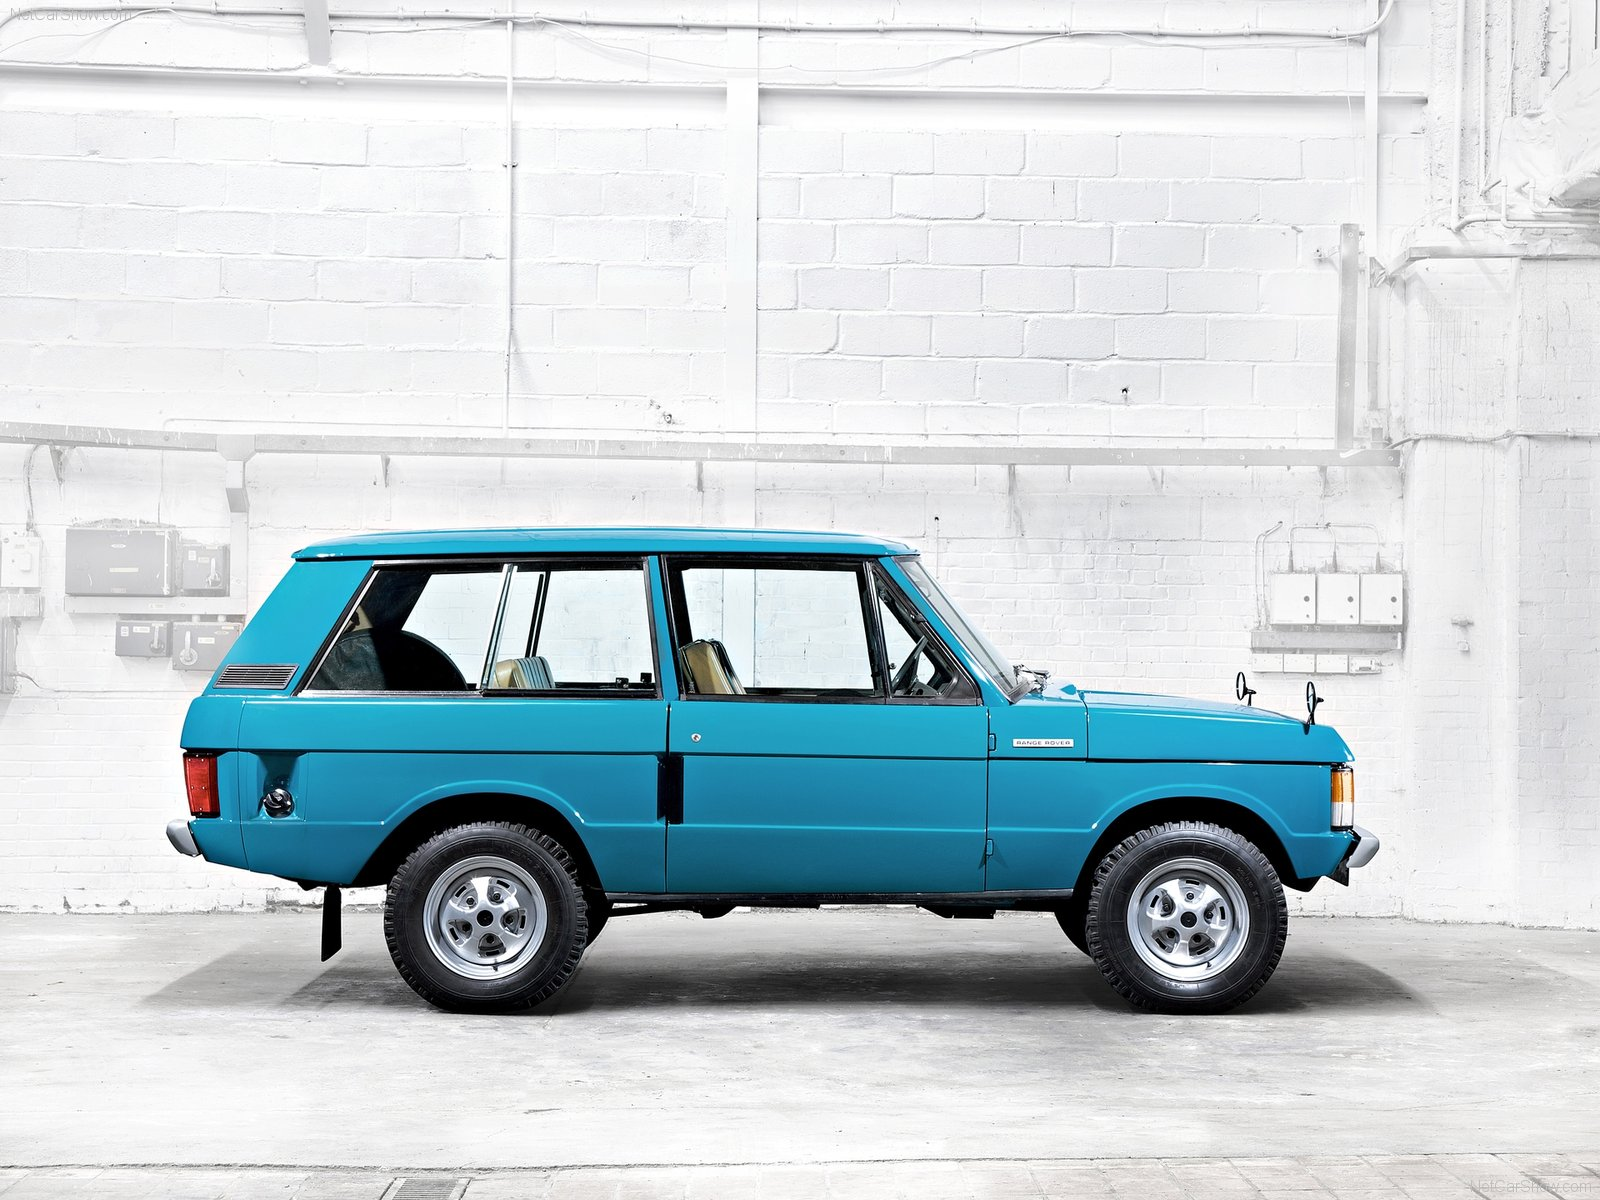 Photo of Land Rover Range Rover Classic #74067. Image size: 1600 x ...